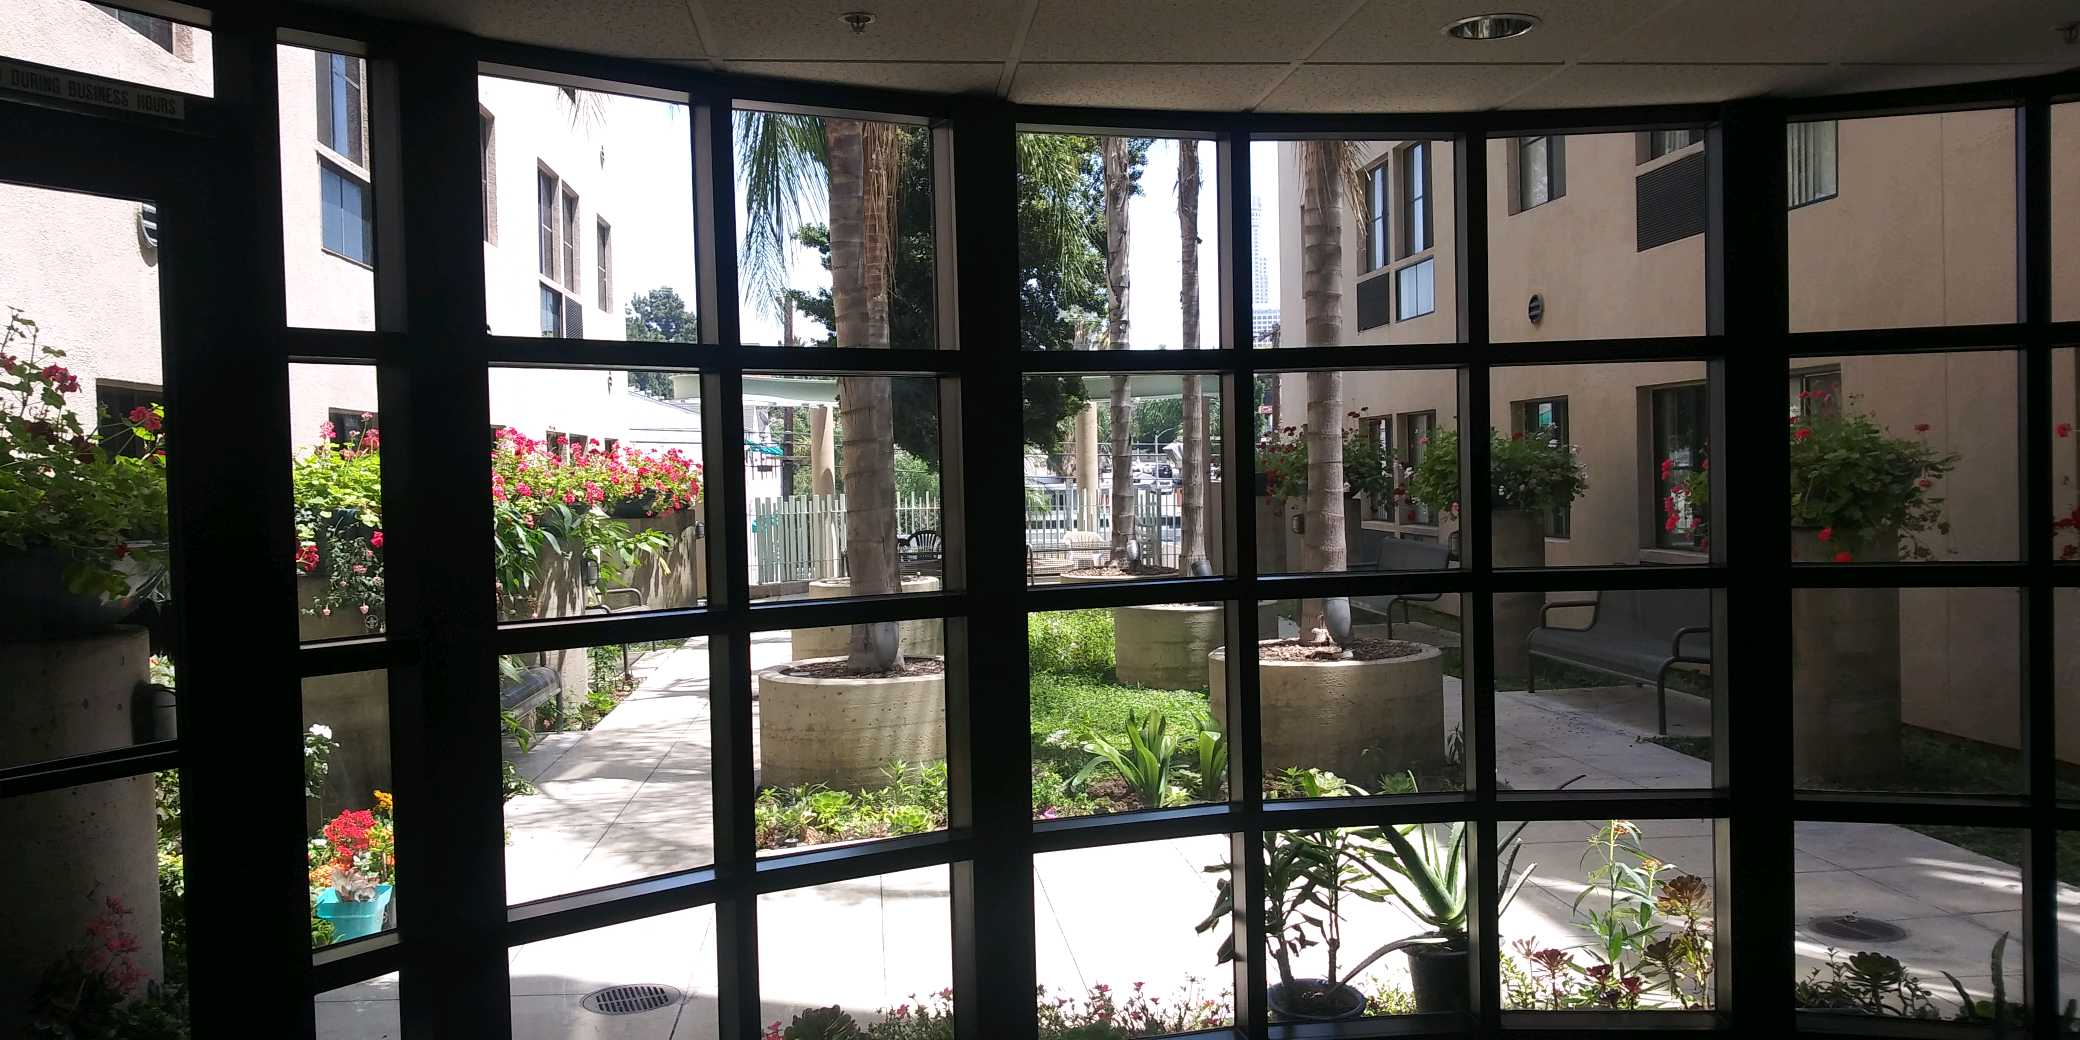 View of courtyard from inside building window. In the center are six large evenly spaced palm trees in planters with side walk access on either side. Park bench seating throughout courtyard. Flower planters along building